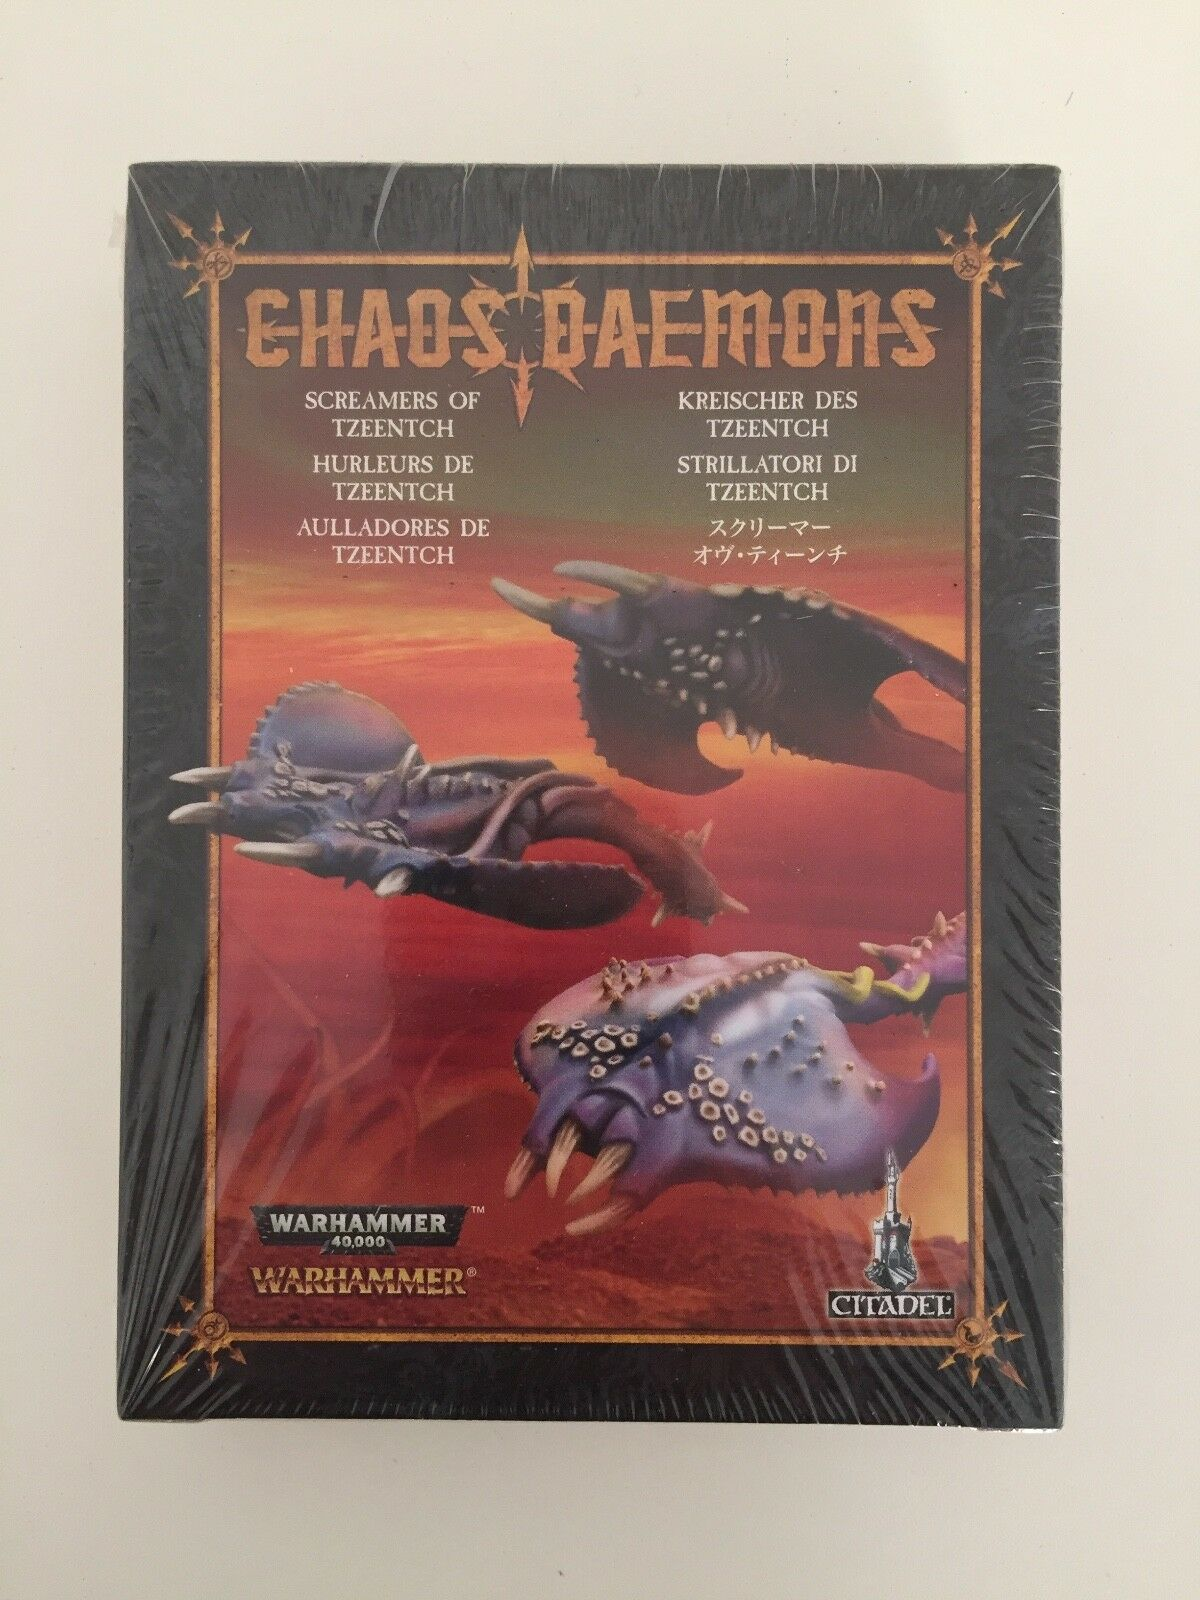 WARHAMMER AGE OF SIGMAR CHAOS SCREAMERS OF TZEENTCH DAEMONS BOXED SET METAL